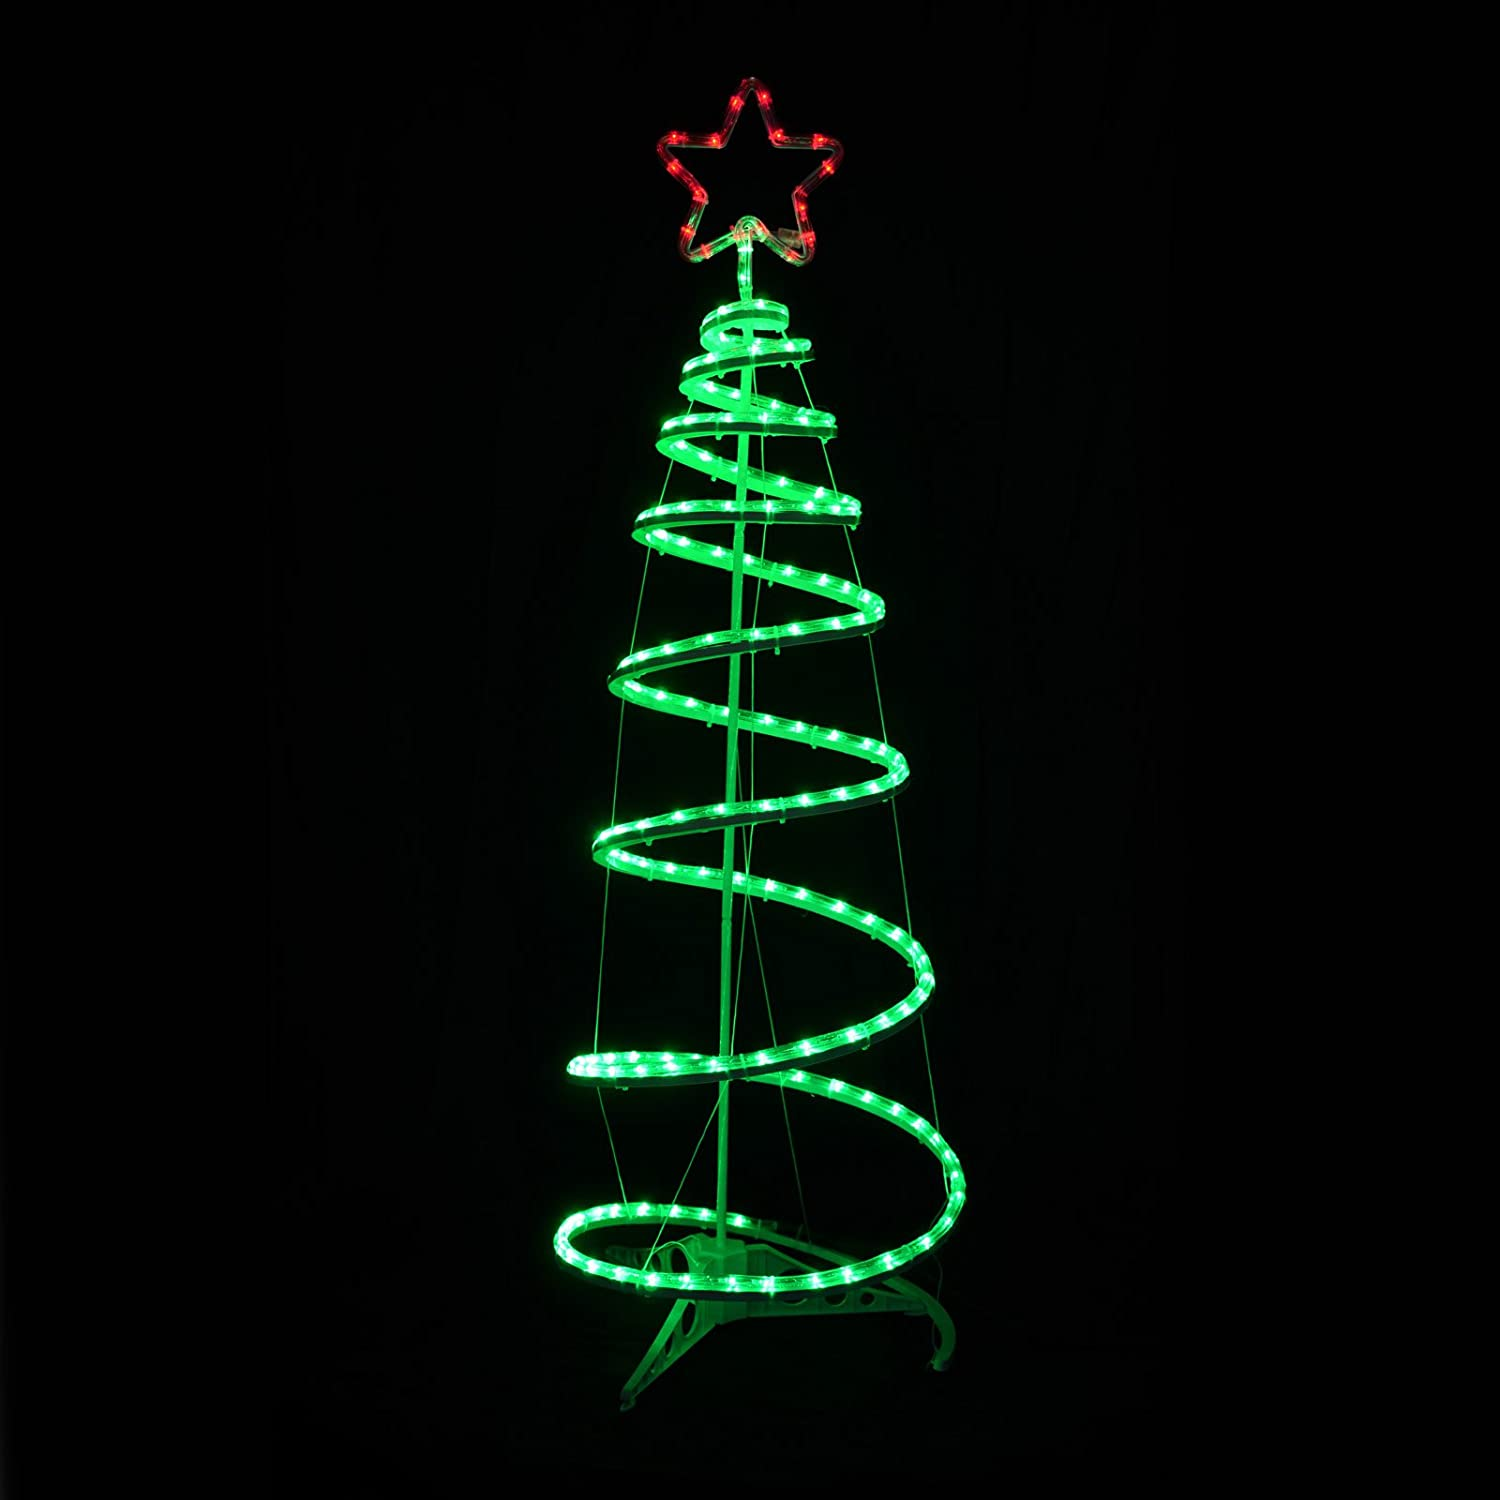 Green spiral tree star led rope light 120cm christmas decoration green spiral tree star led rope light 120cm christmas decoration indoor outdoor amazon kitchen home aloadofball Choice Image